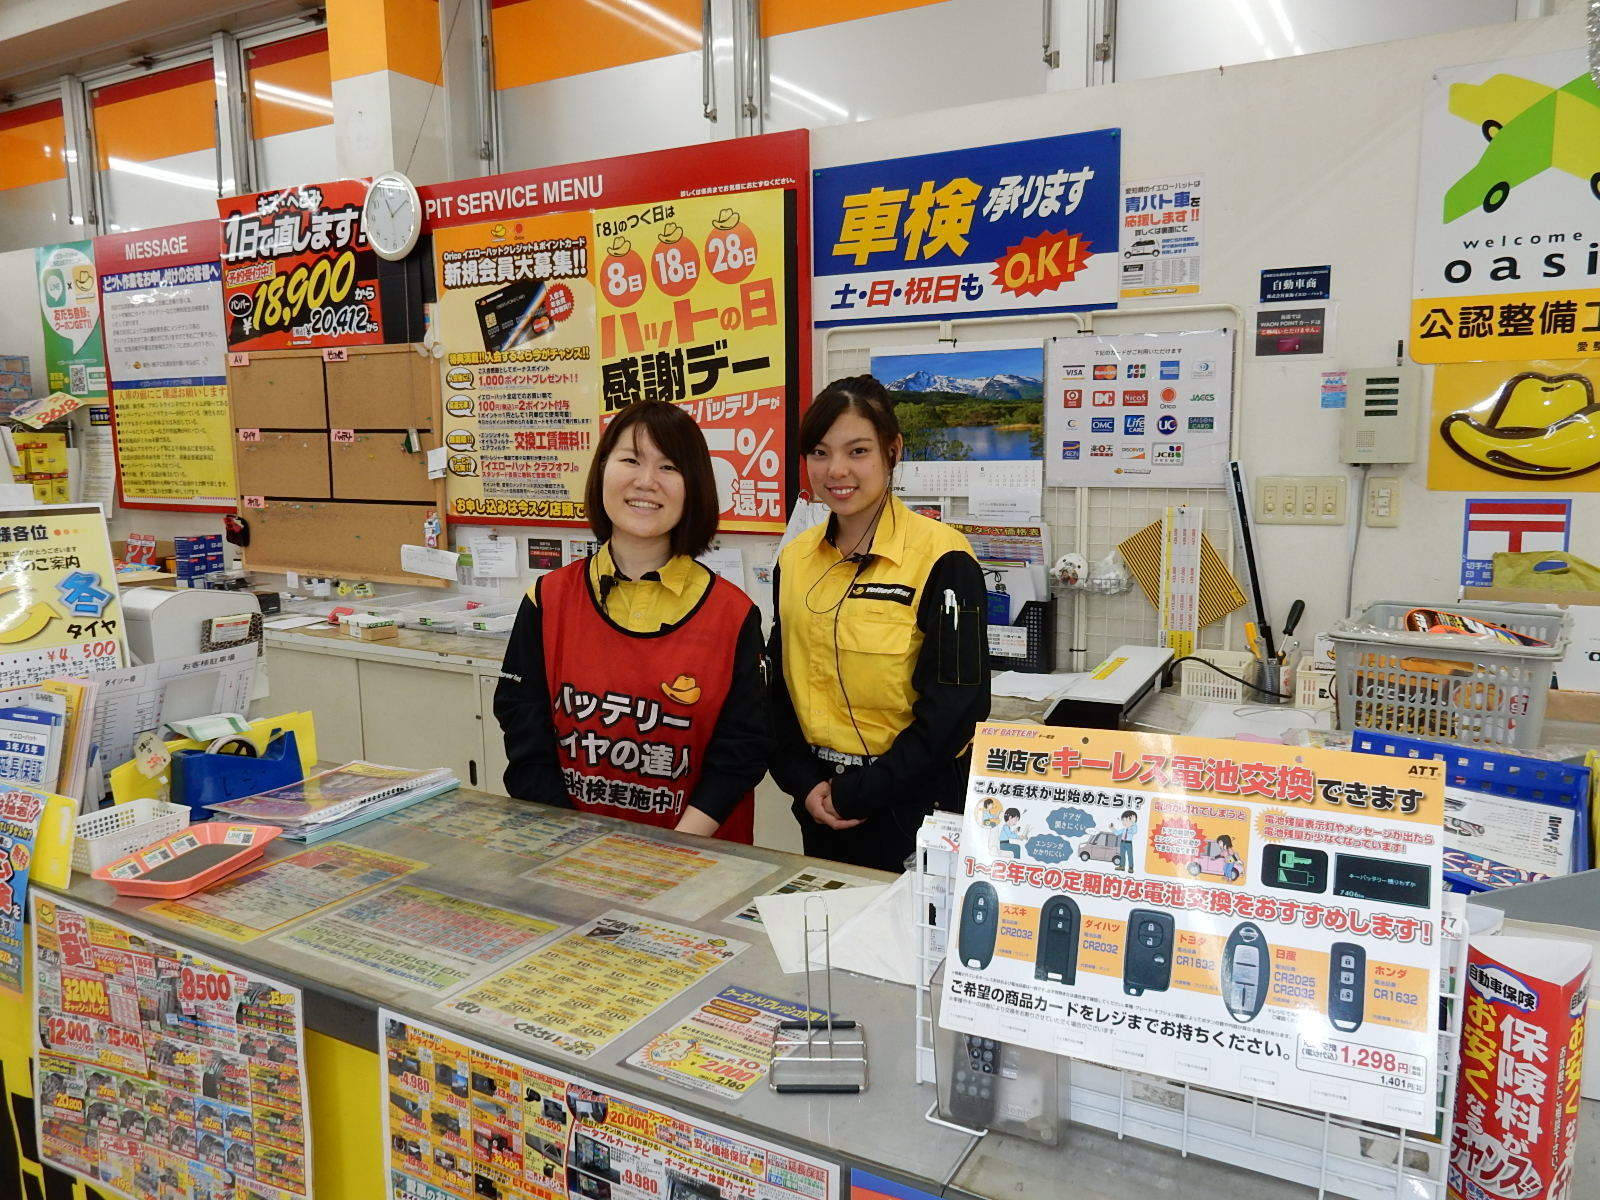 【Toyota Store】Part time Store Sales and Car Maintenance Staff needed in Toyota-shi,Aichi!